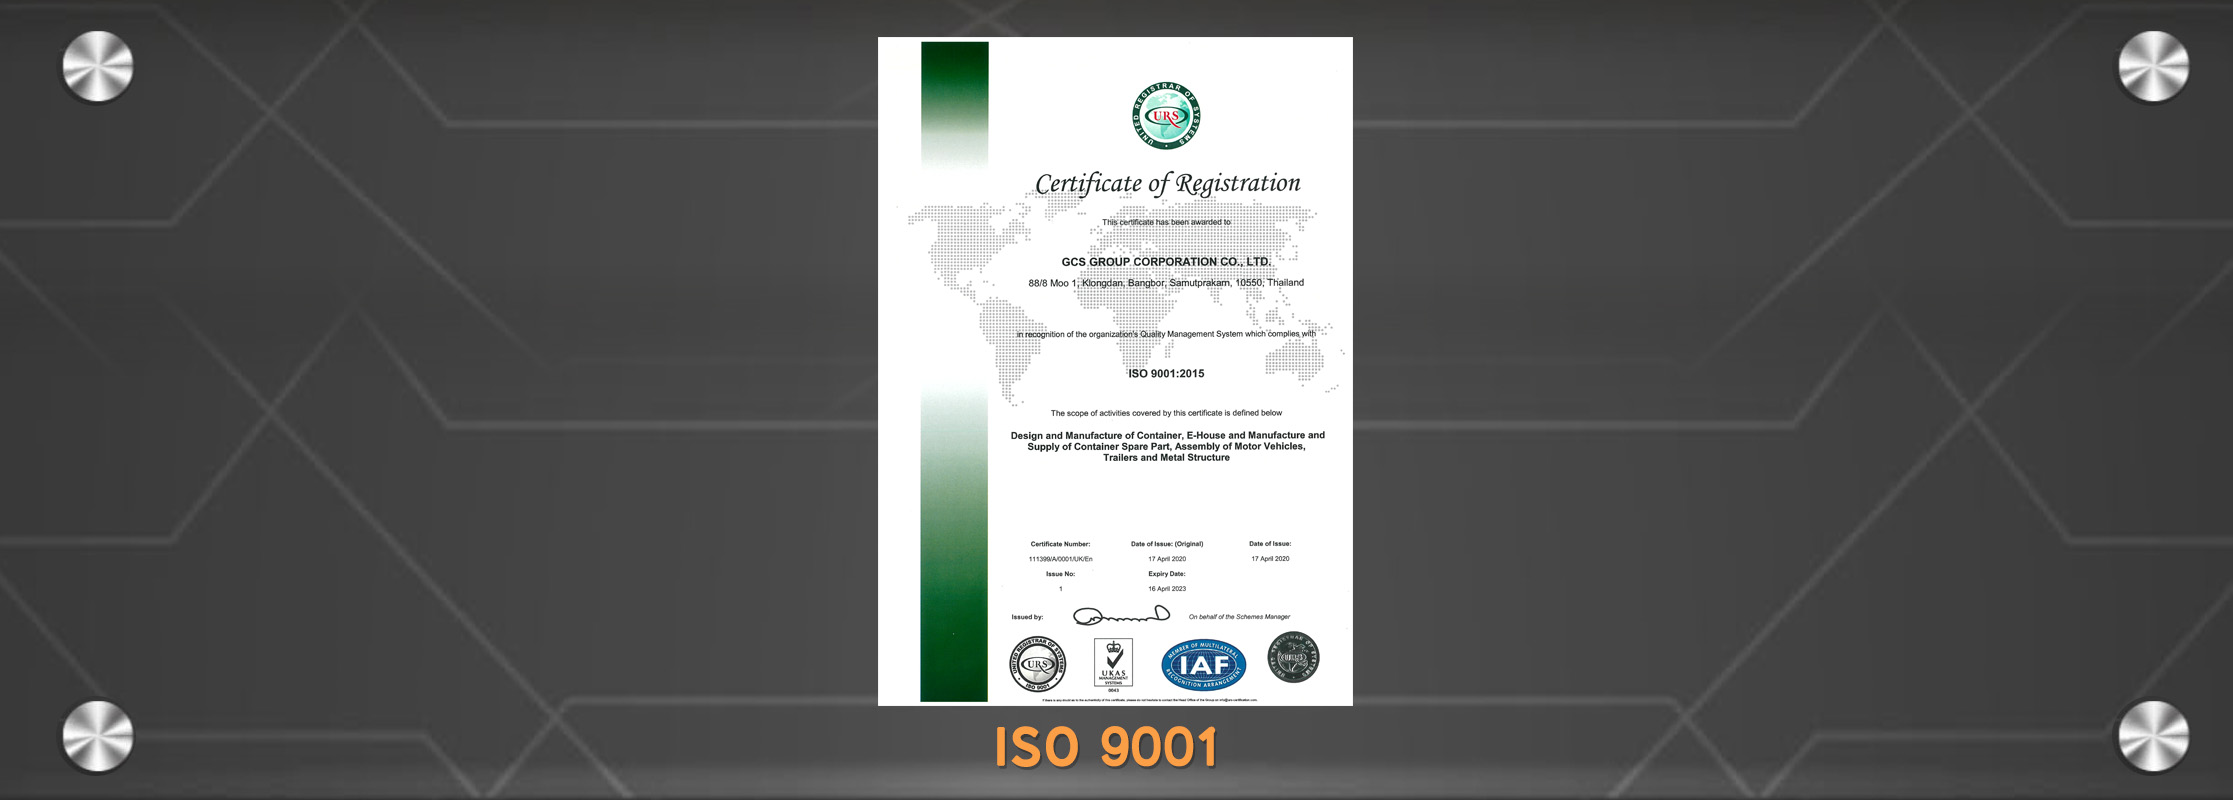 iso9001show